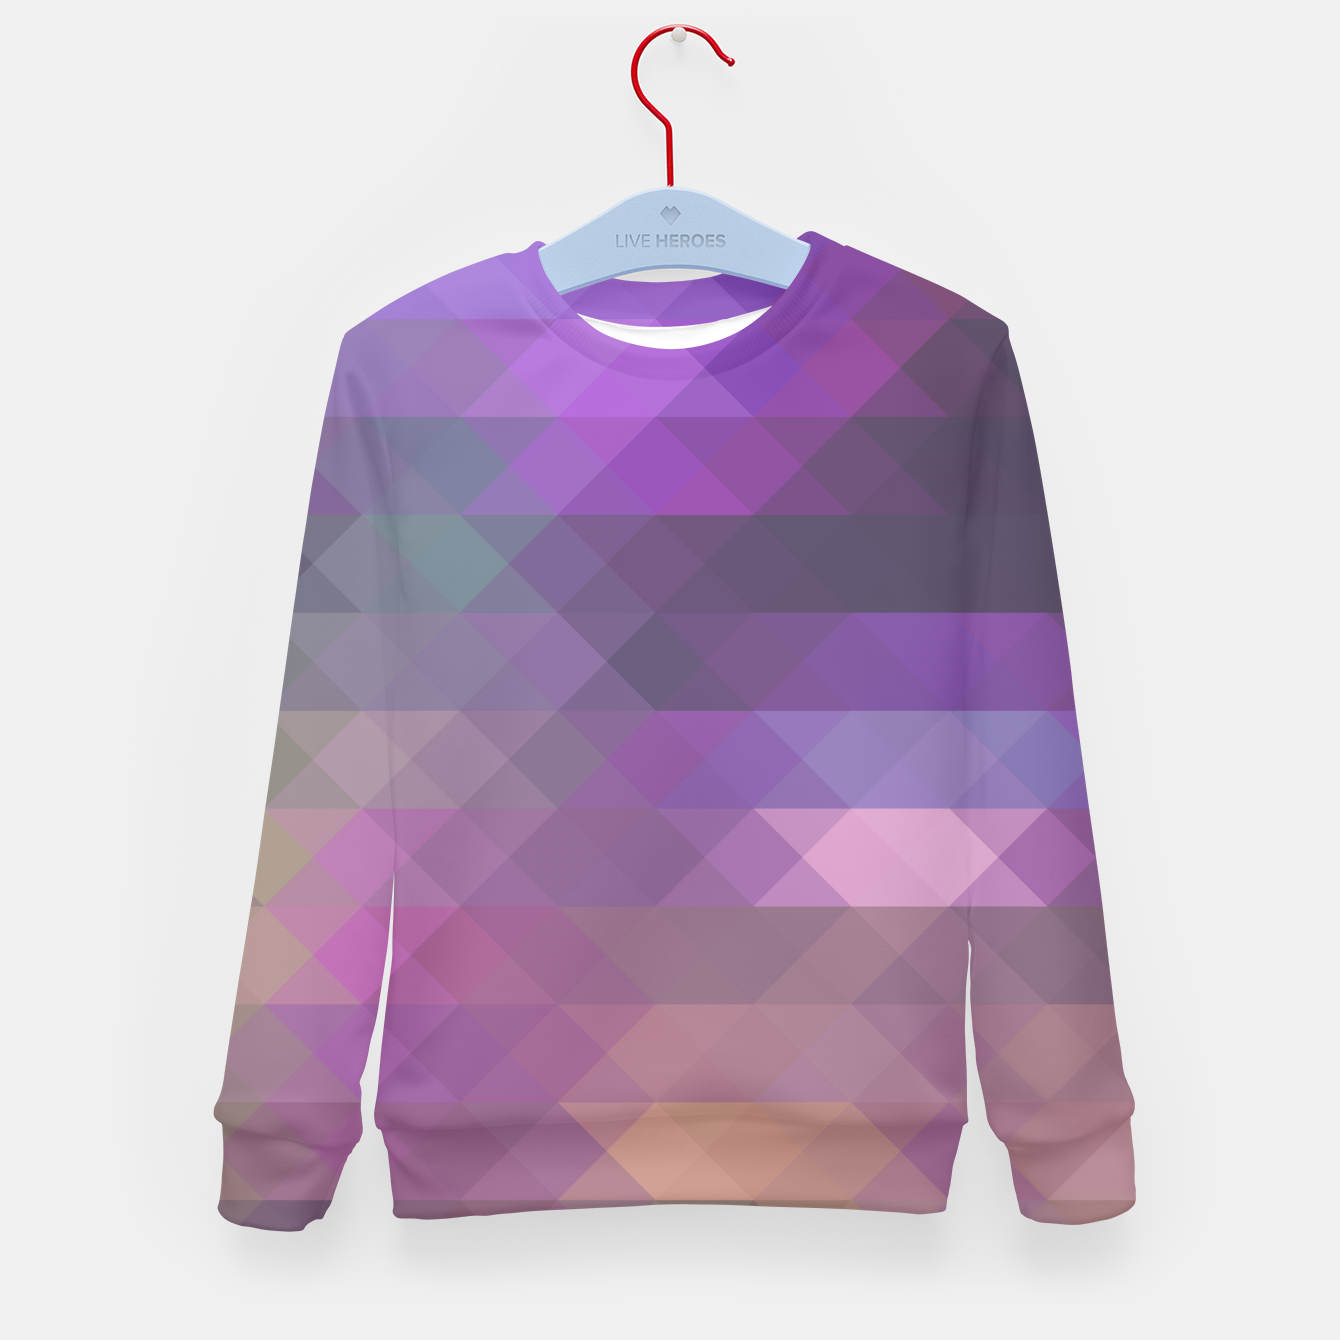 096c8347660e Triangles Abstract Geometric Graphic Kid's Sweater, Live Heroes